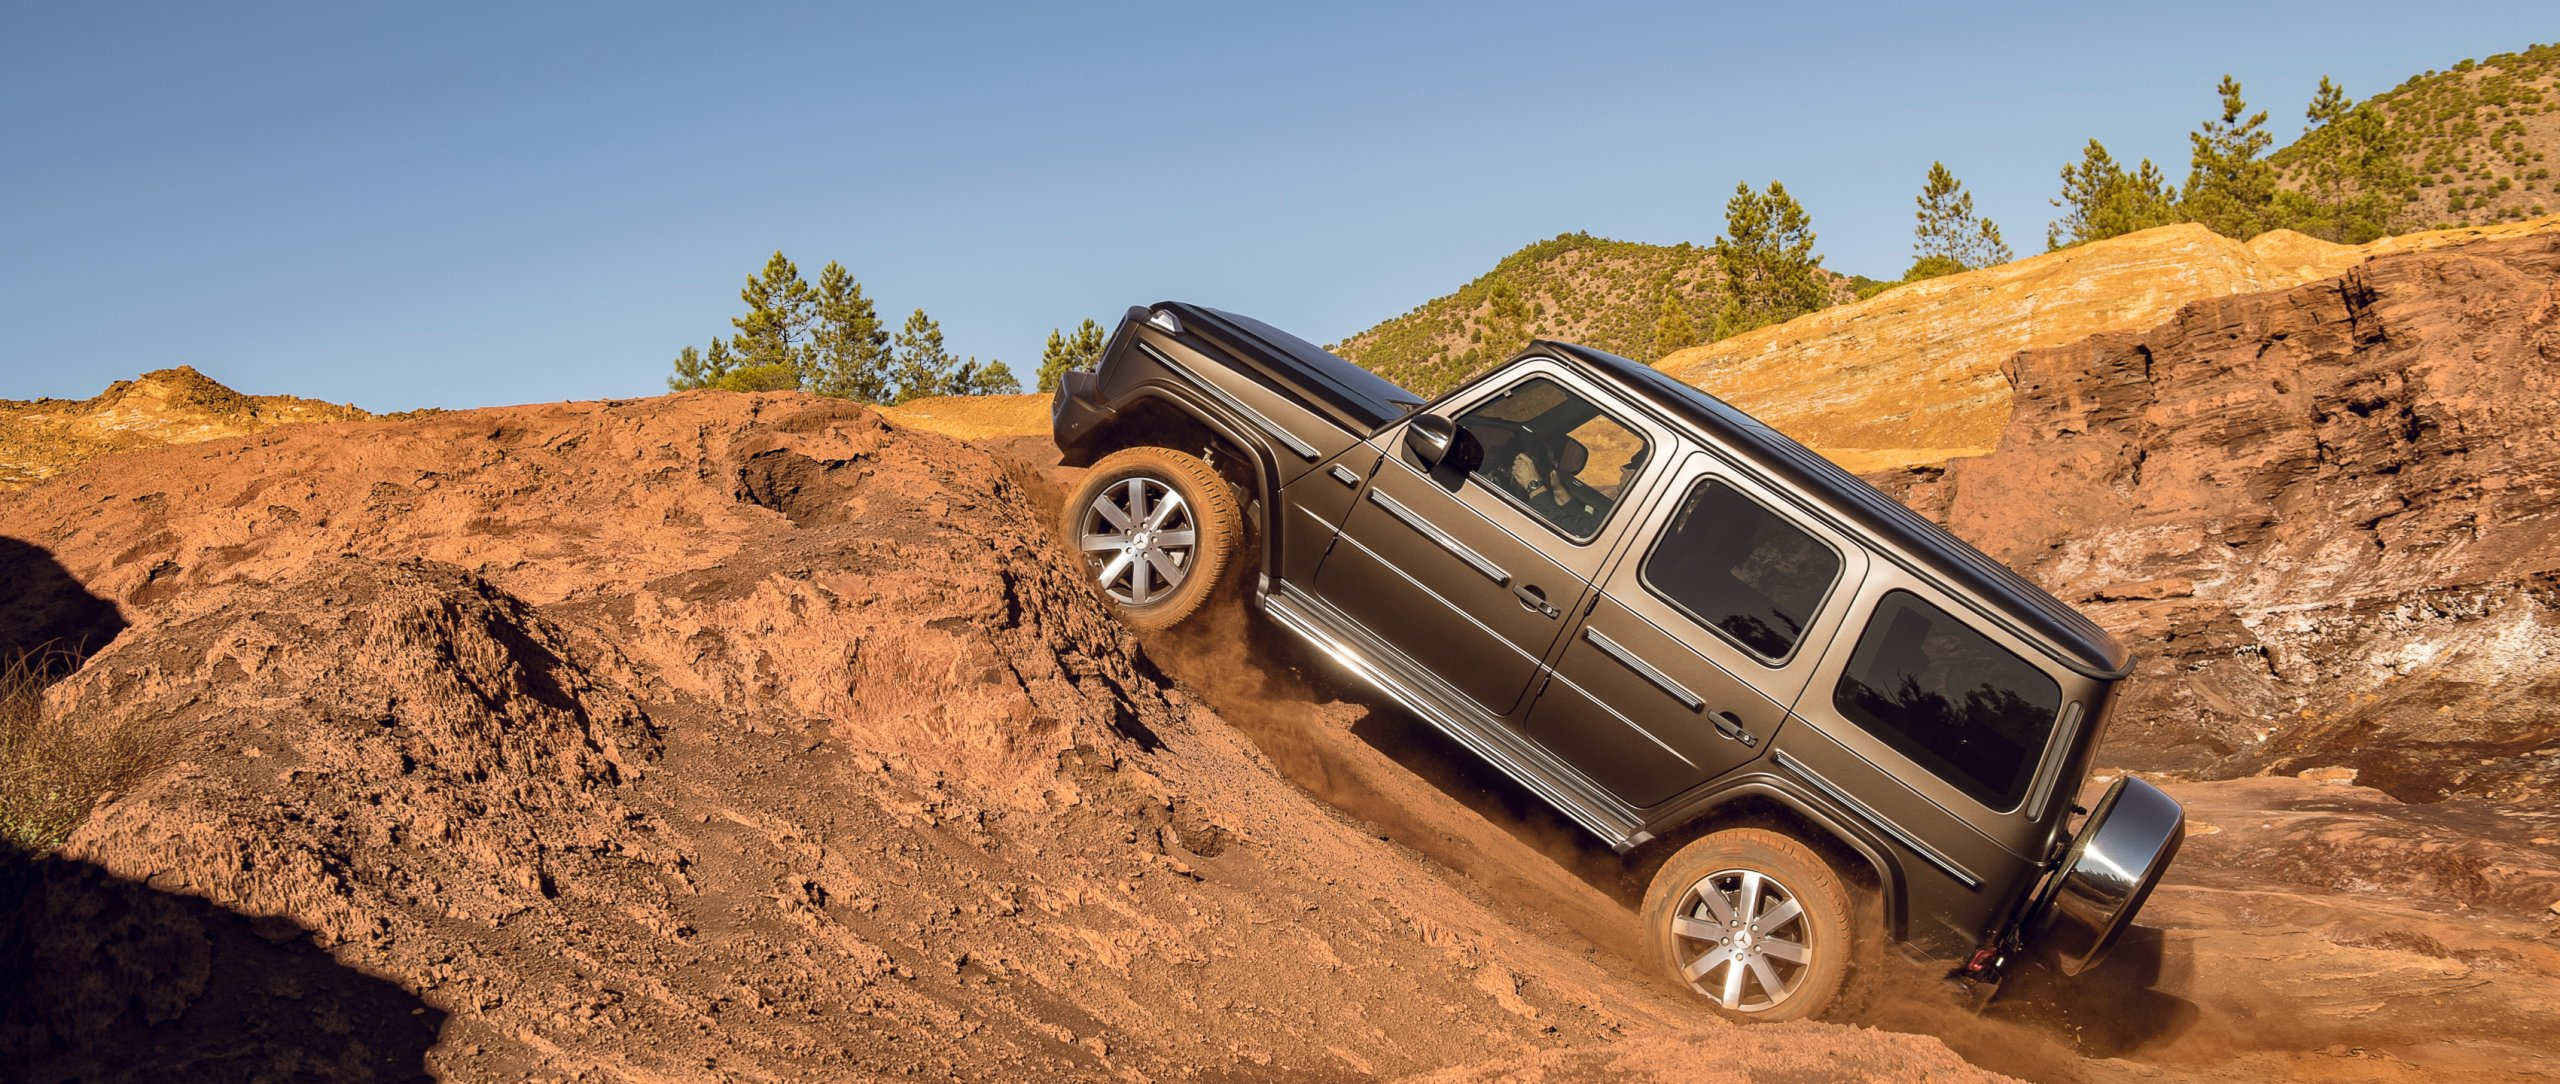 Anniversary For The Mercedes Benz G Class